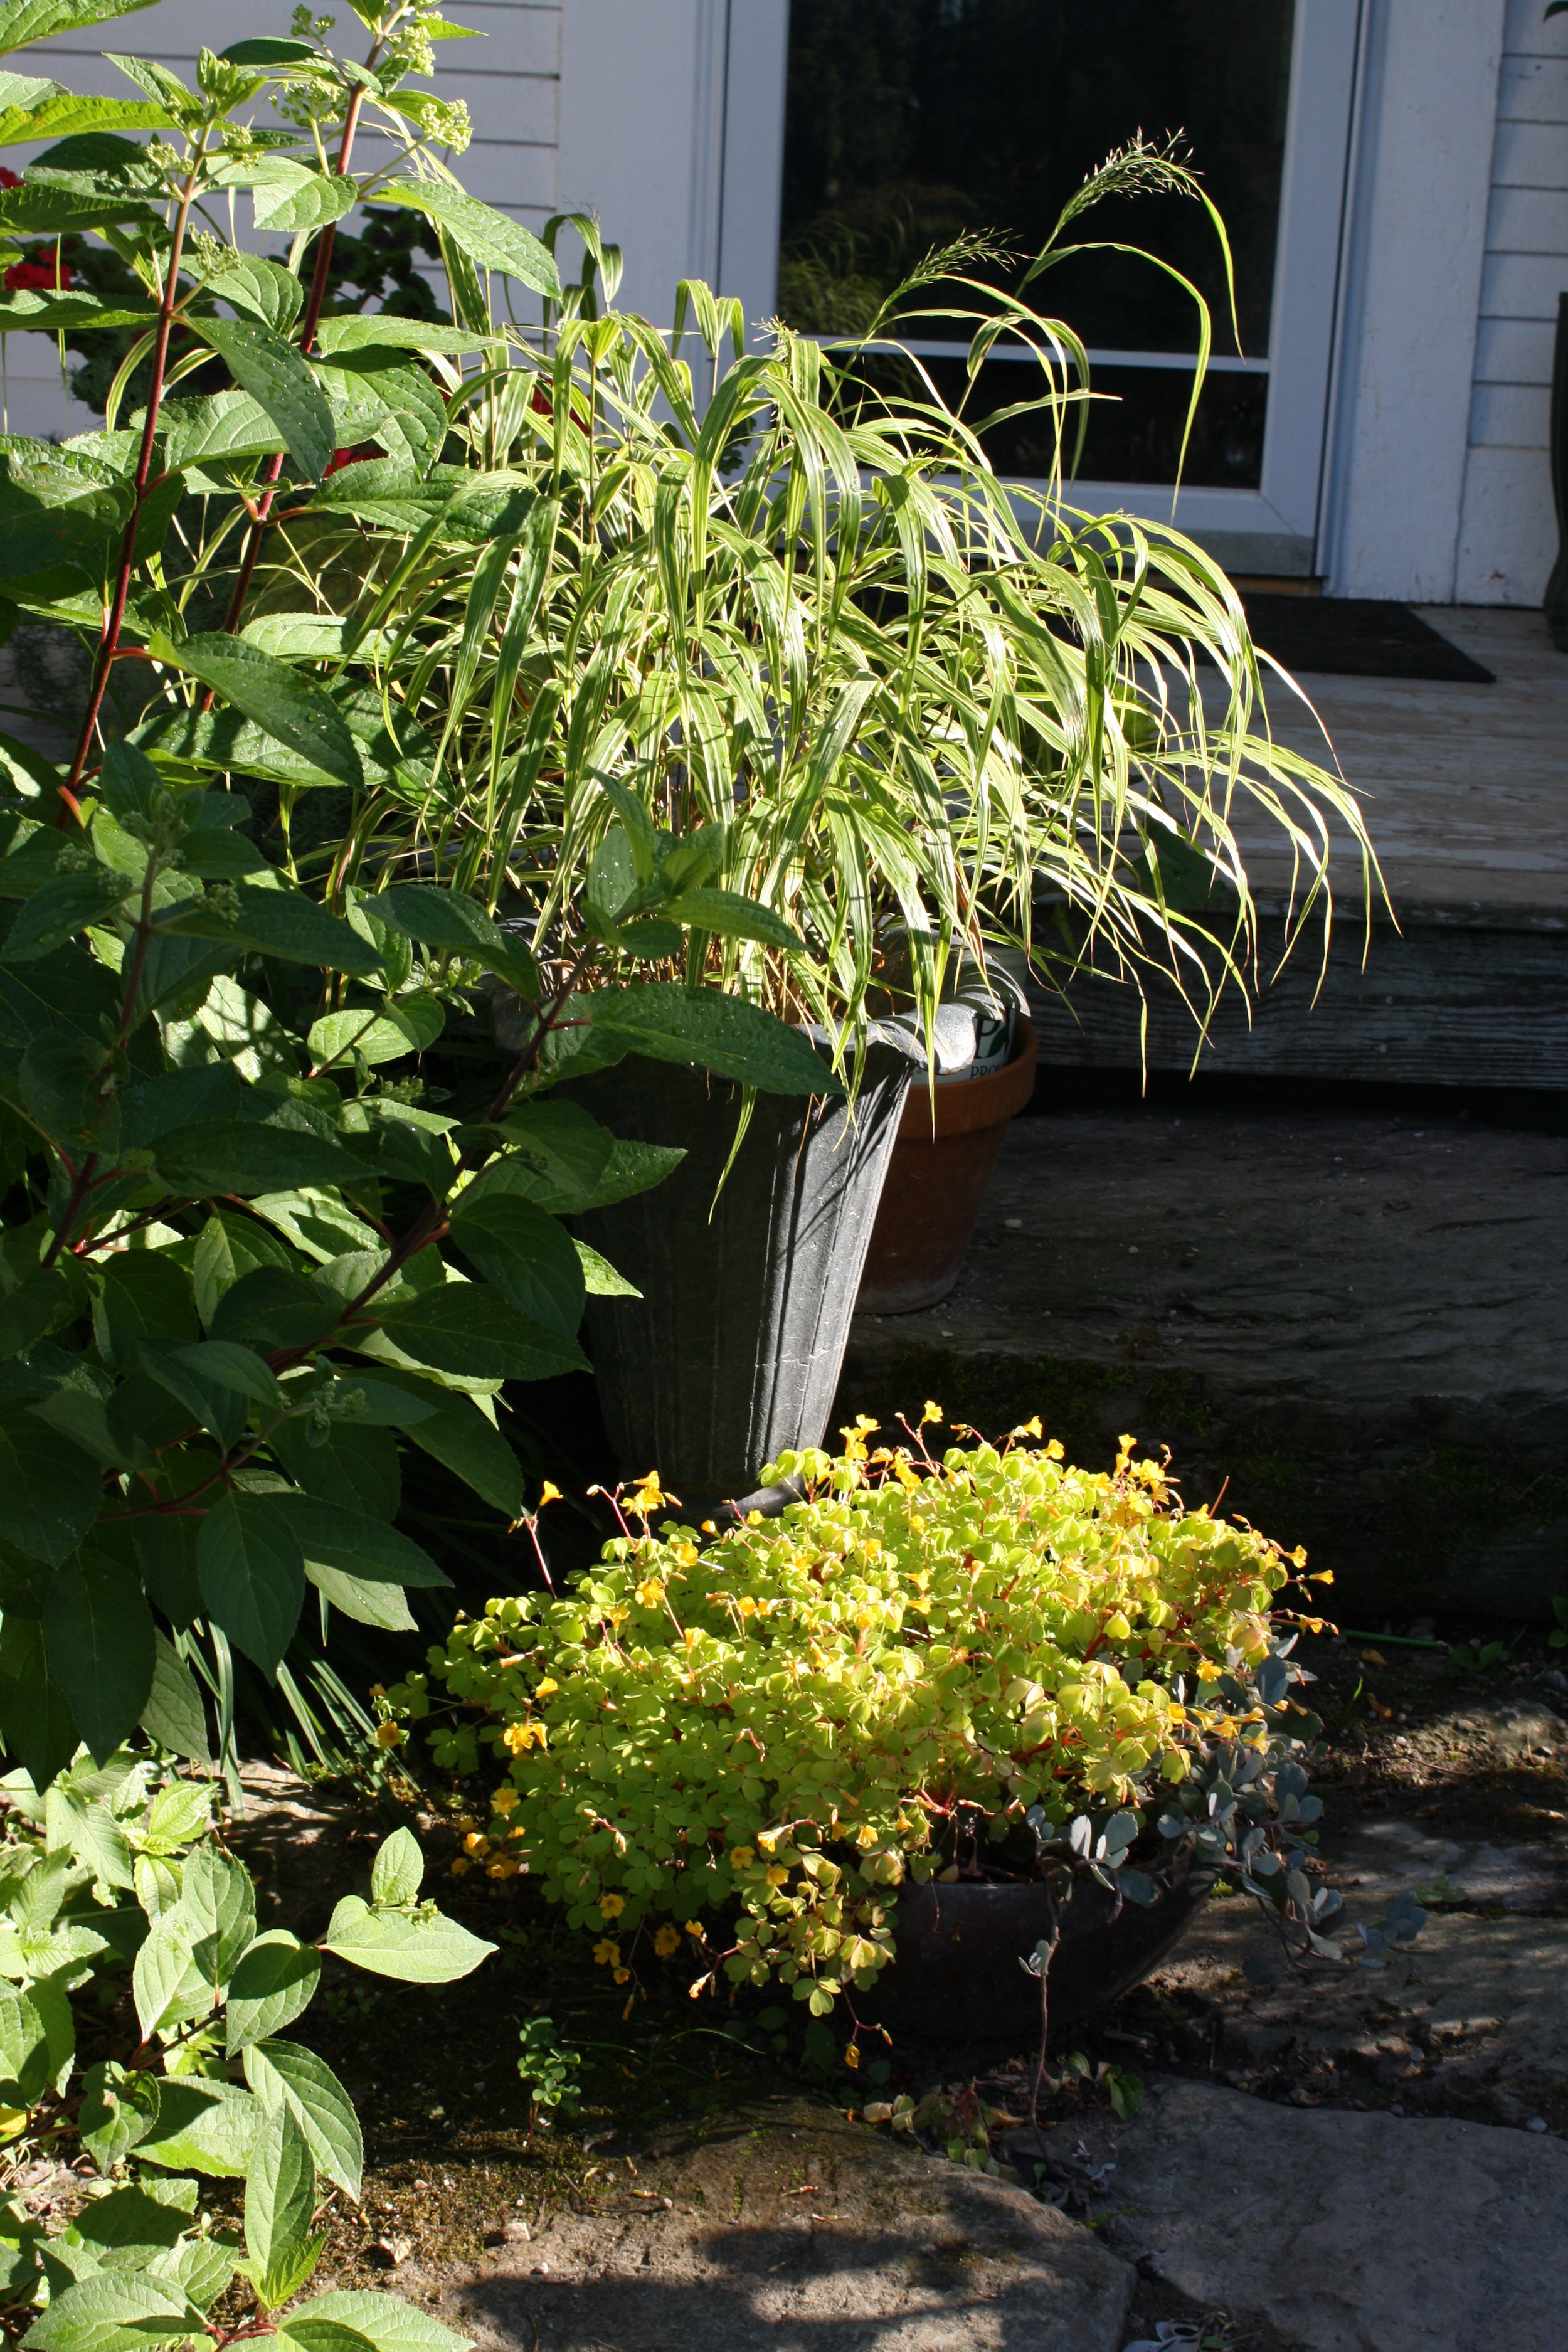 tulip urn with Hakonechloa (Japanese reed grass) and bowl planter with 'Fireglow' oxalis and dwarf blue Kalanchoe